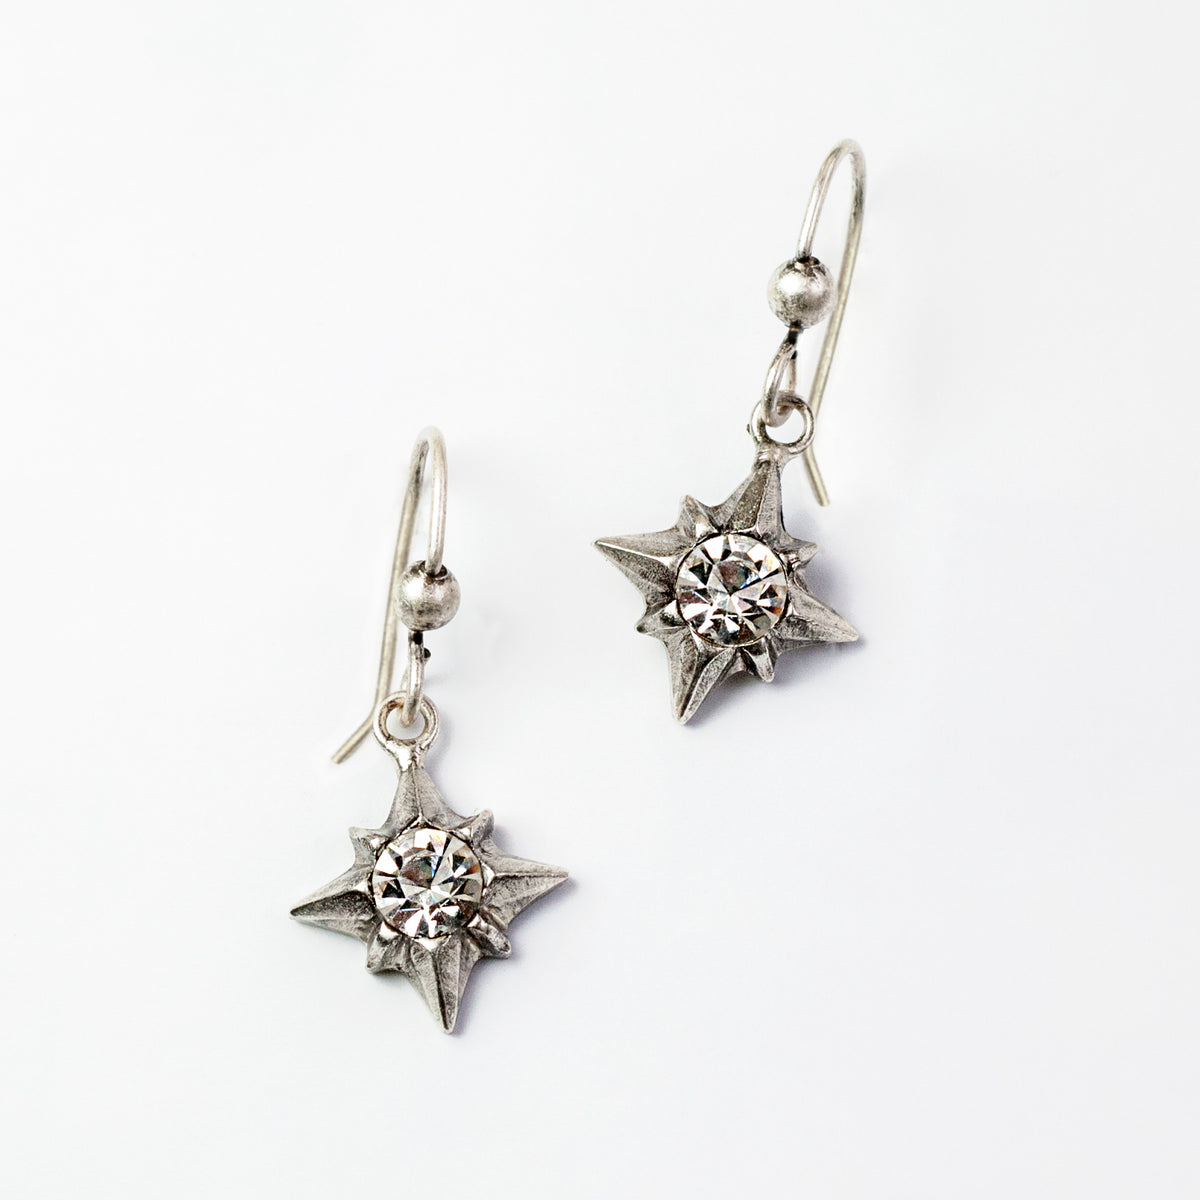 Statement Star Earrings E1496 - Sweet Romance Wholesale